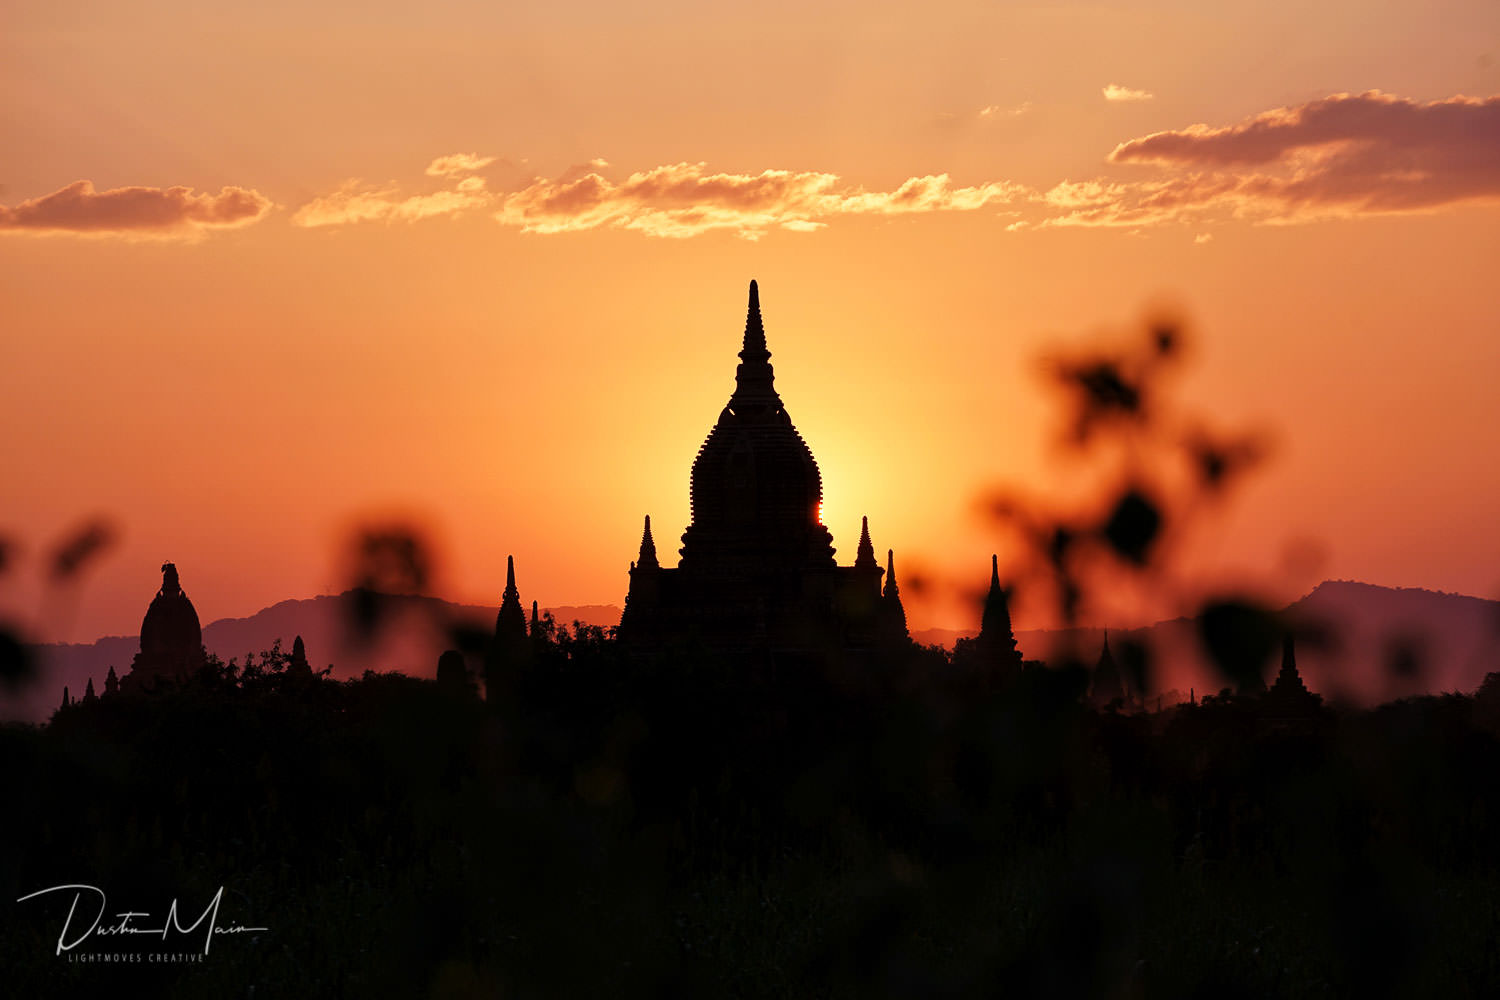 Temple silhouette at sunset in Bagan, Myanmar © Dustin Main 2017